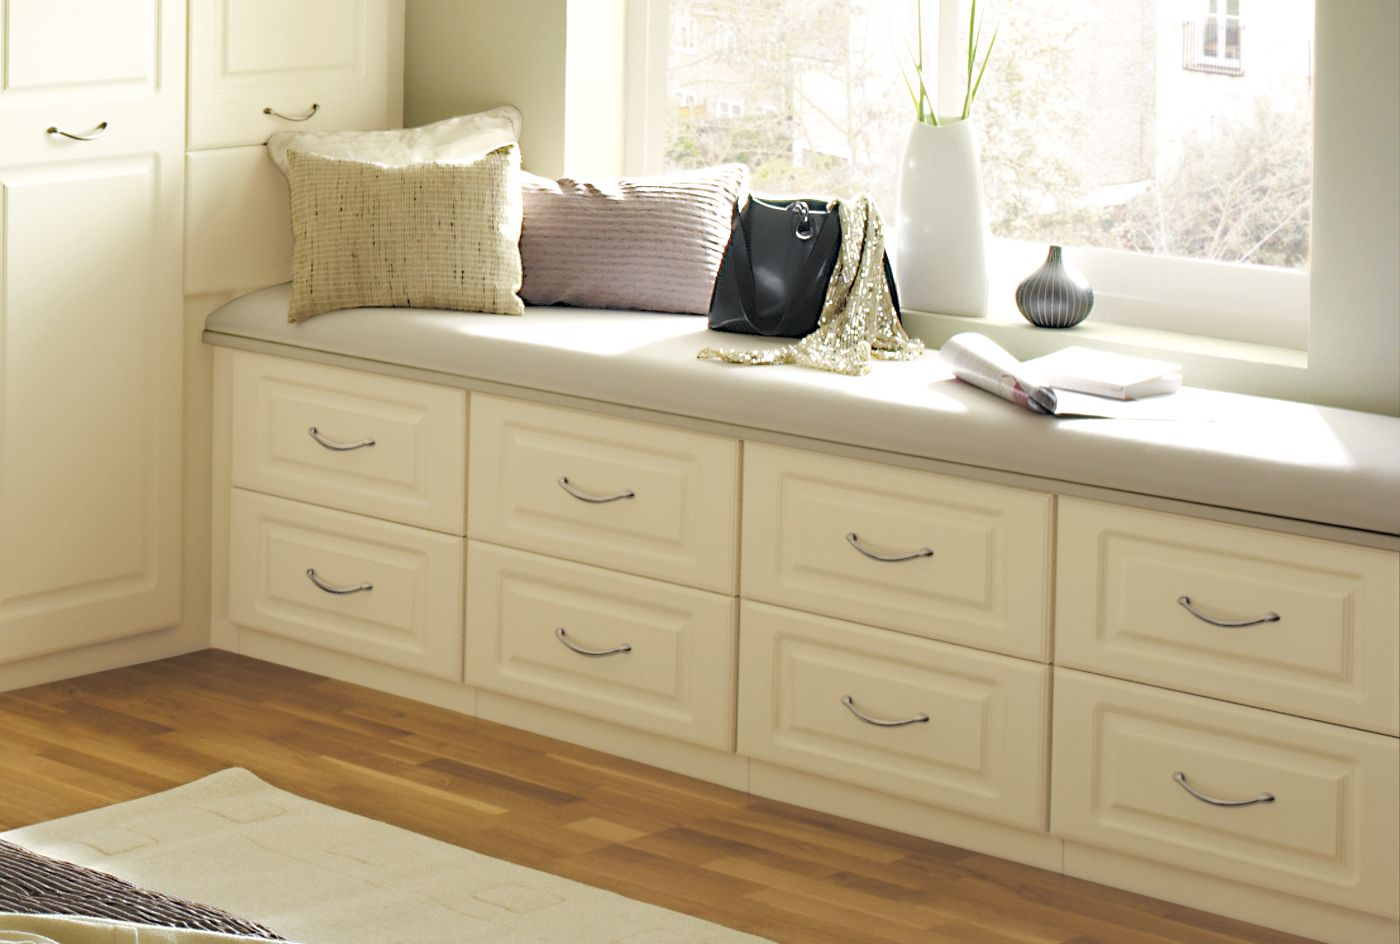 Fitted Bedroom Furniture For Small Bedrooms Built In Wardrobes And Fitted Drawers Help Improve Storage Space